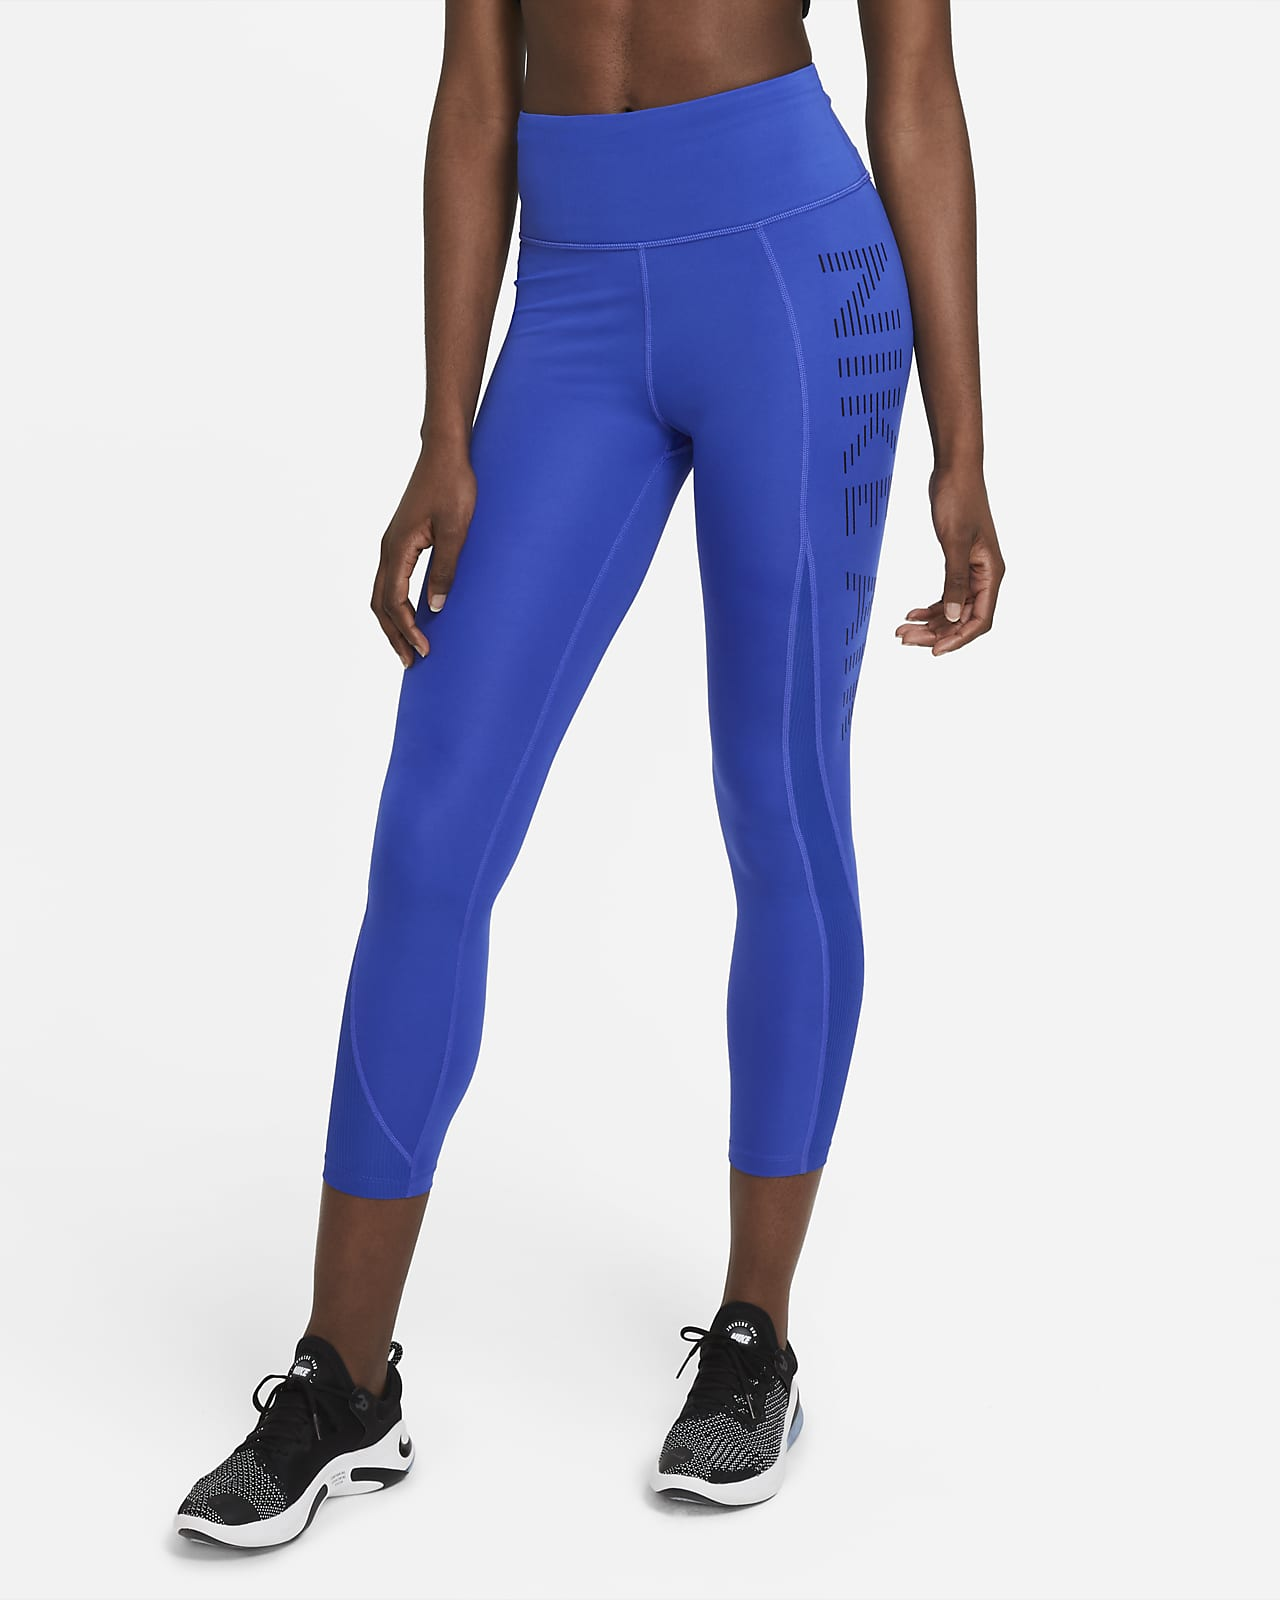 Nike Air Epic Fast Women's 7/8-Length Running Tights